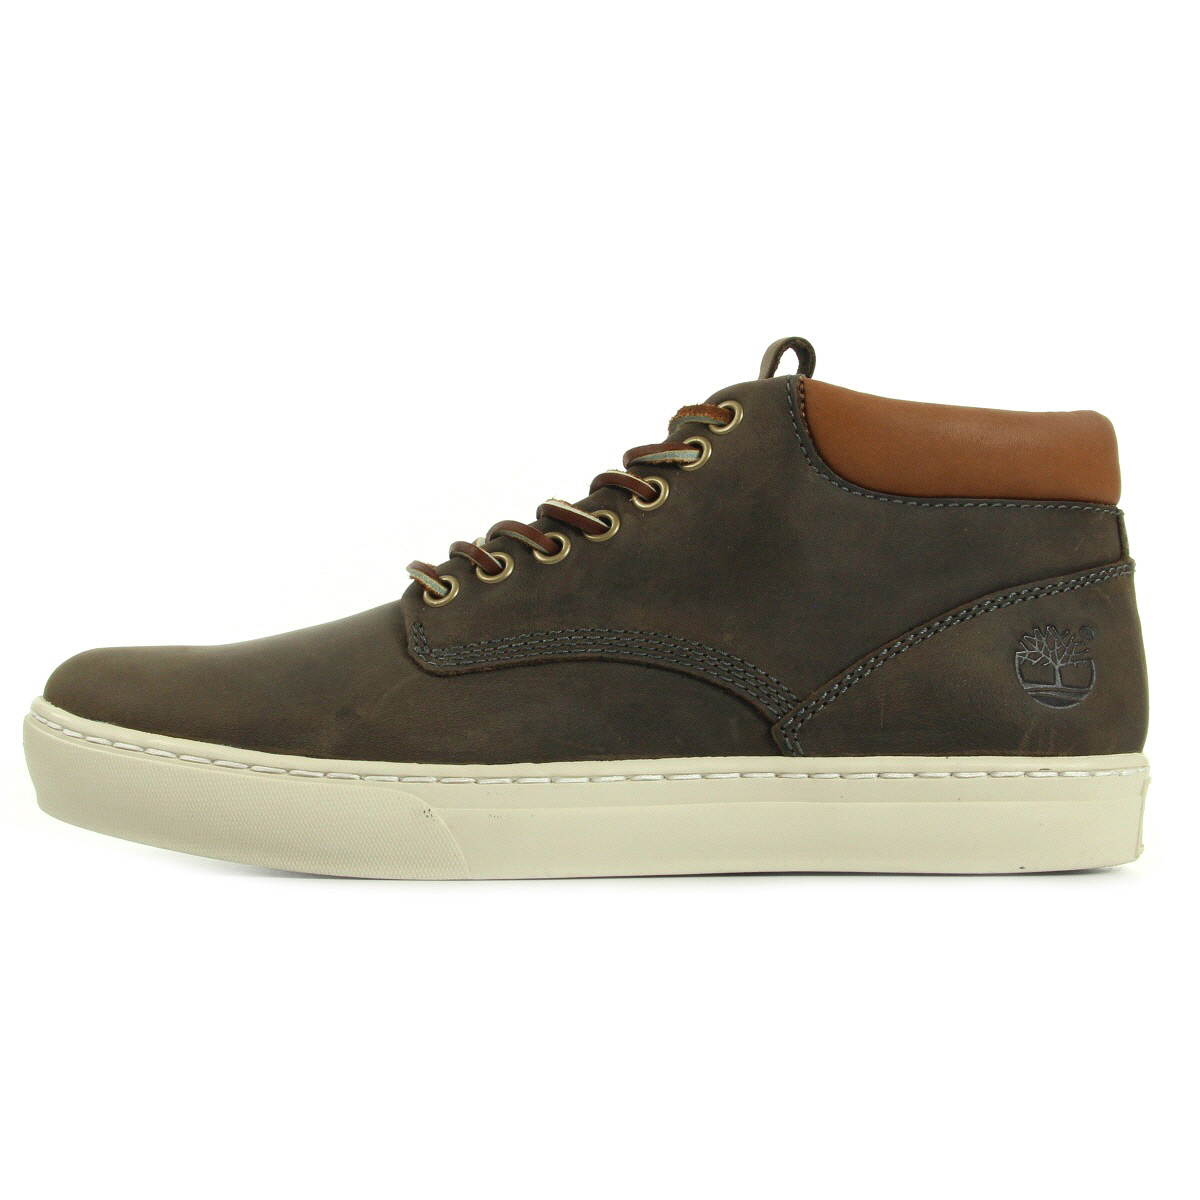 Timberland Adv 2.0 Cupsole Chukka C5345R, Boots homme